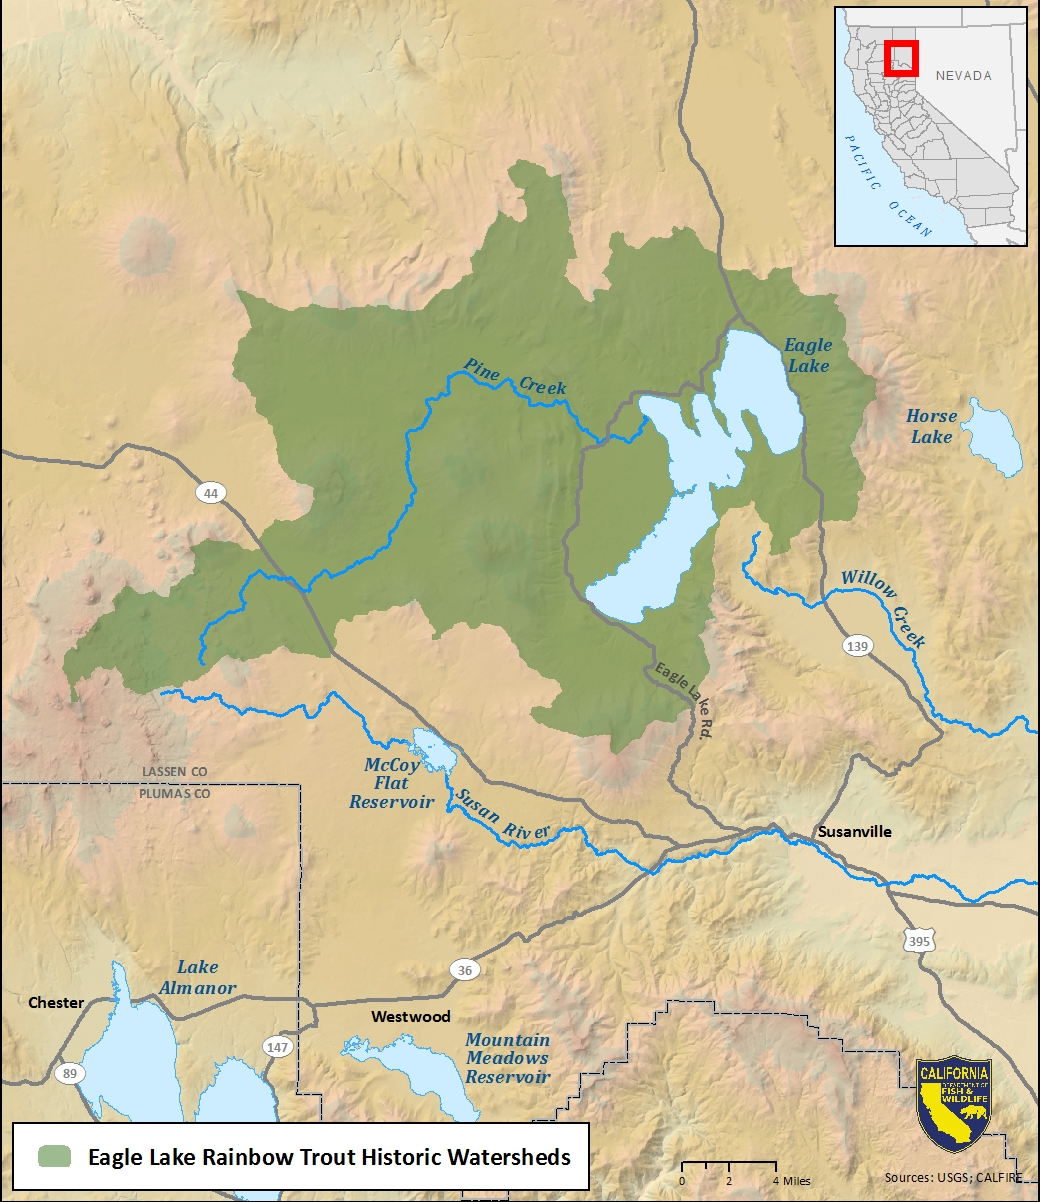 Map of Eagle Lake rainbow trout historic watershed-link opens in new window